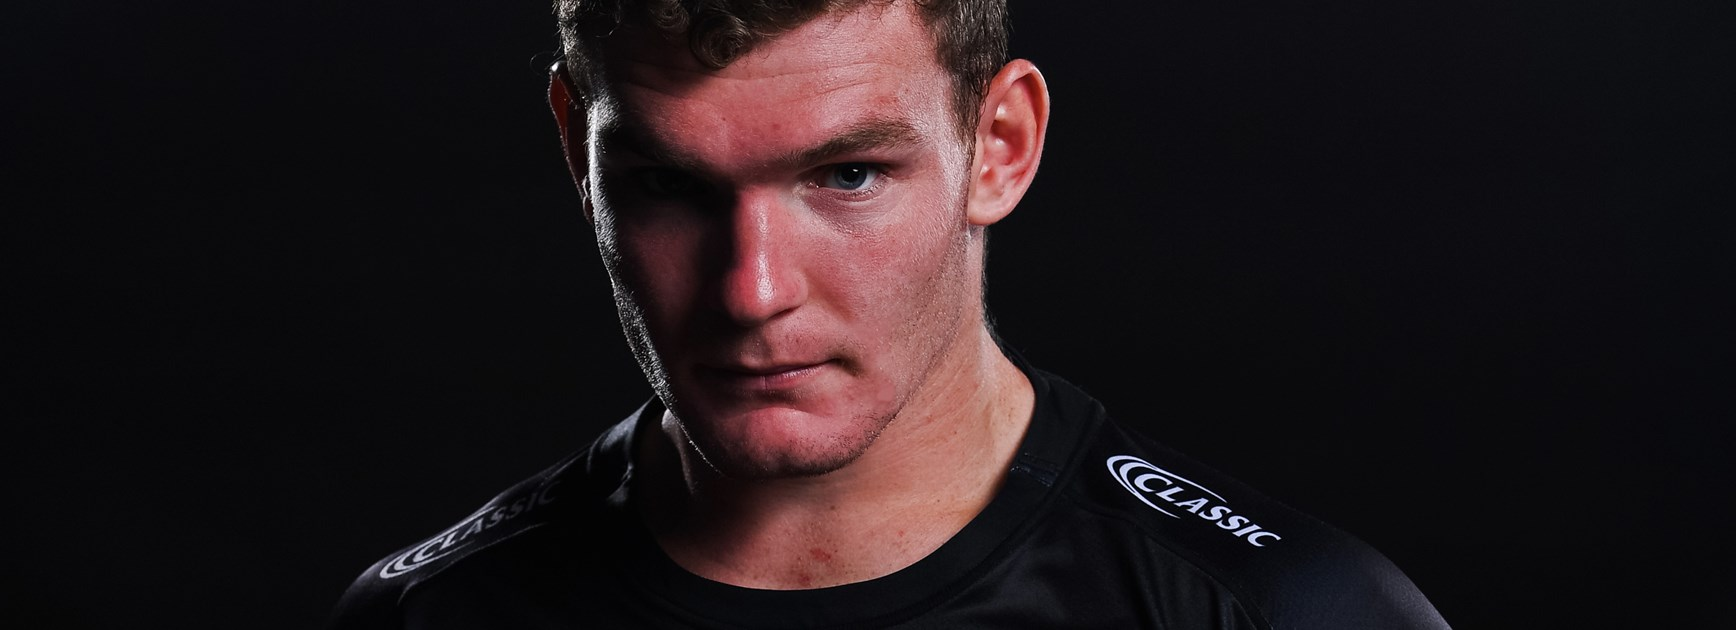 No-nonsense Penrith forward Martin a student not to be messed with